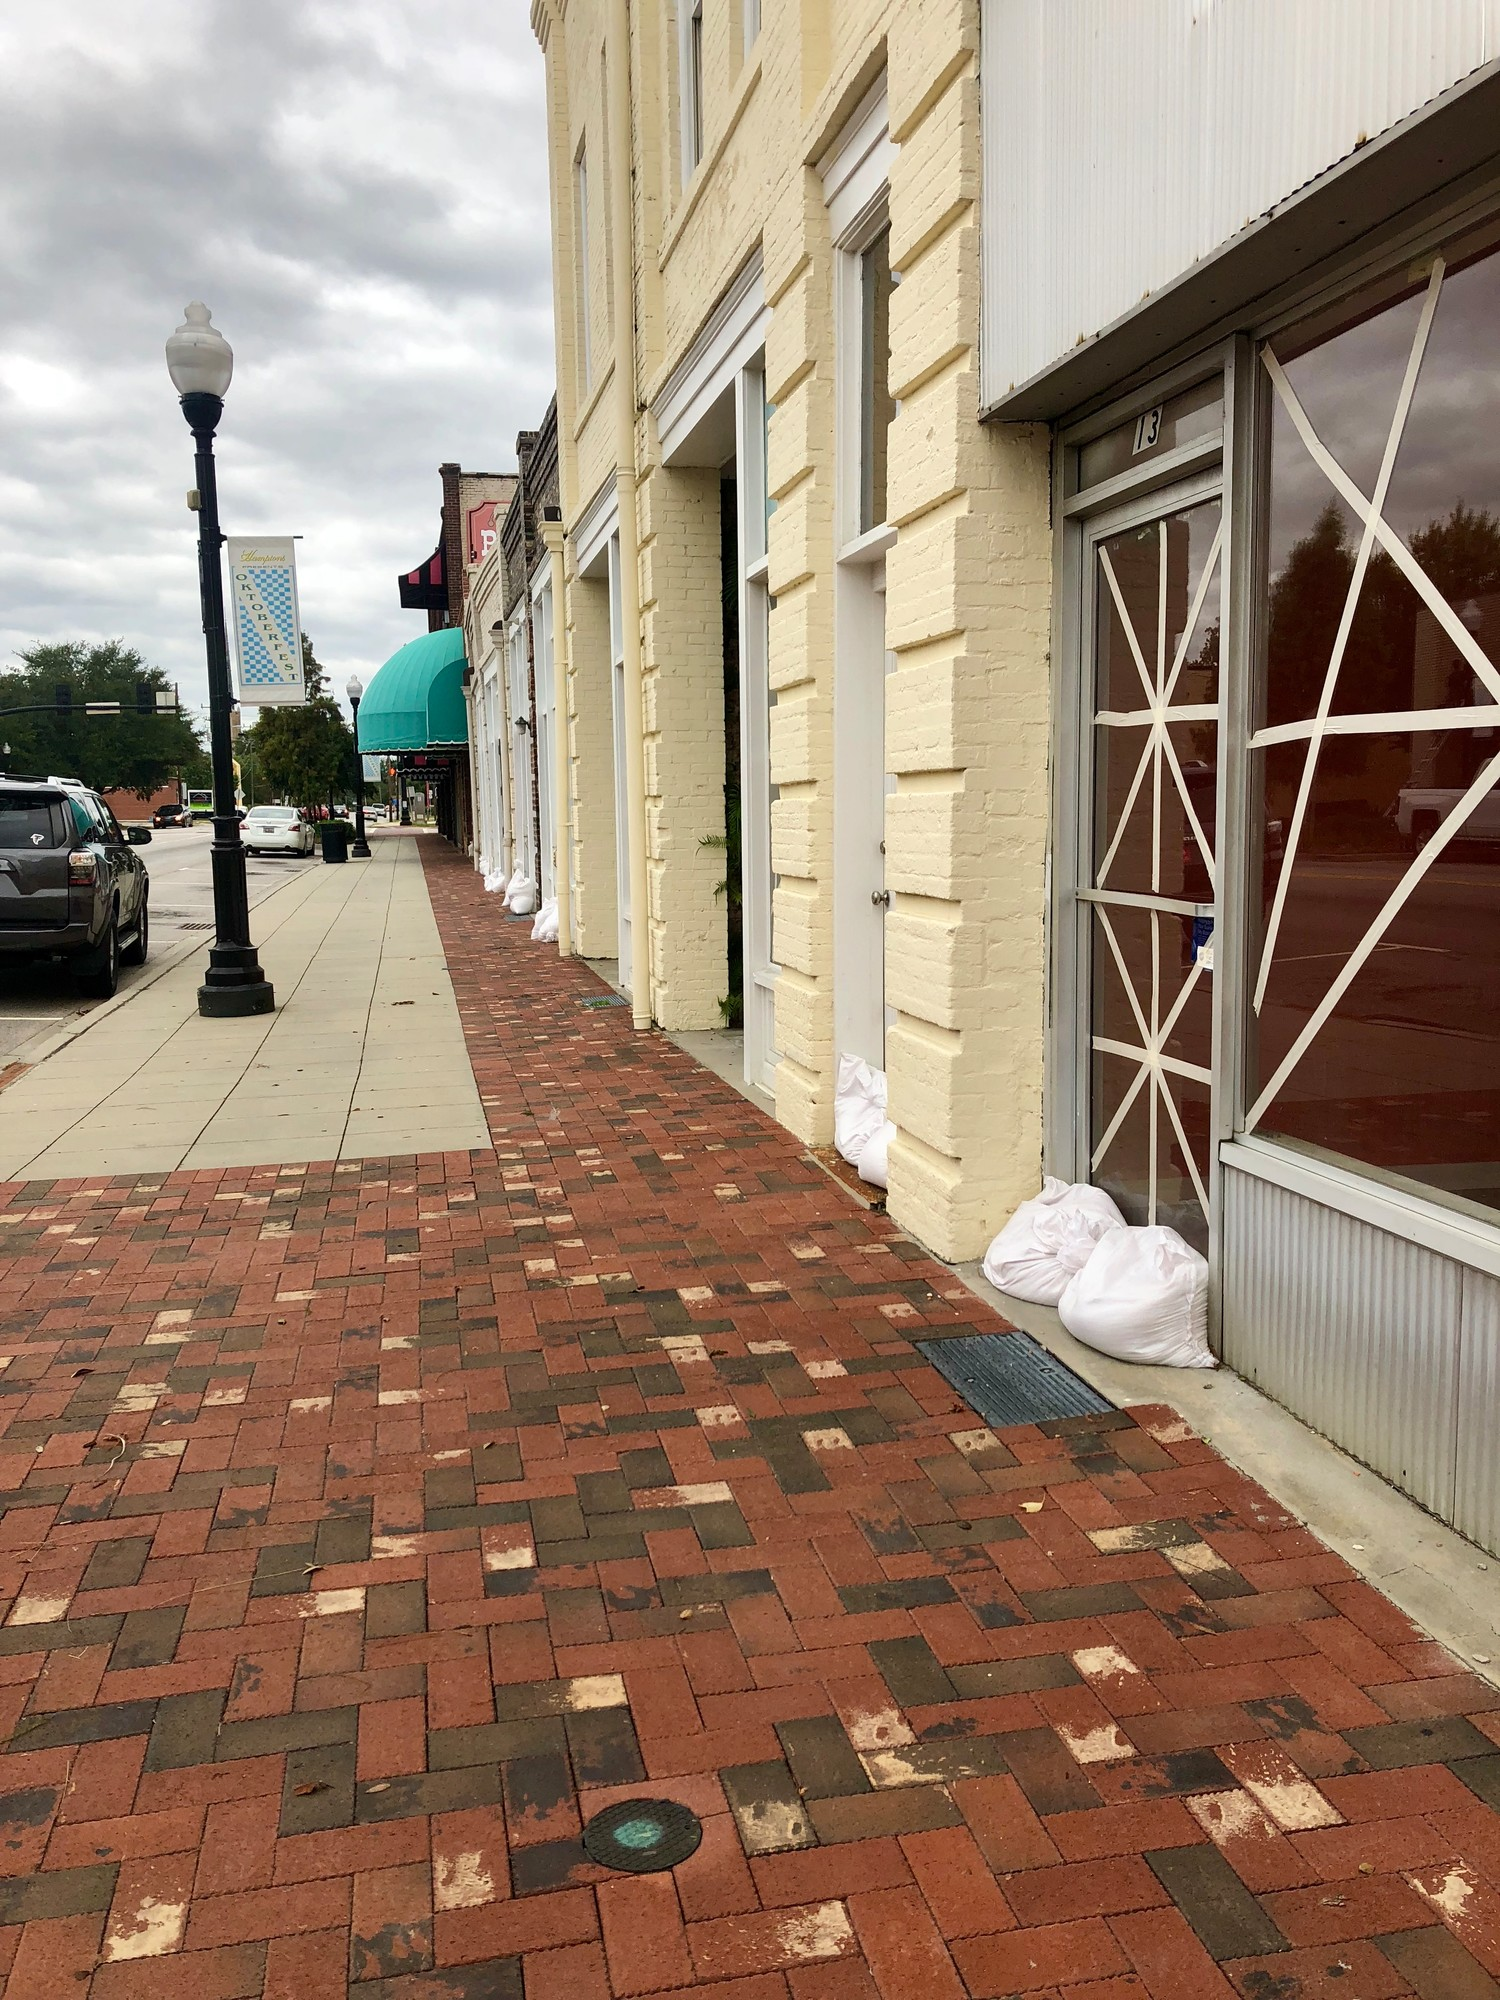 Business fronts are taped and sandbagged ahead of Hurricane Florence's arrival on Friday afternoon in downtown Sumter.